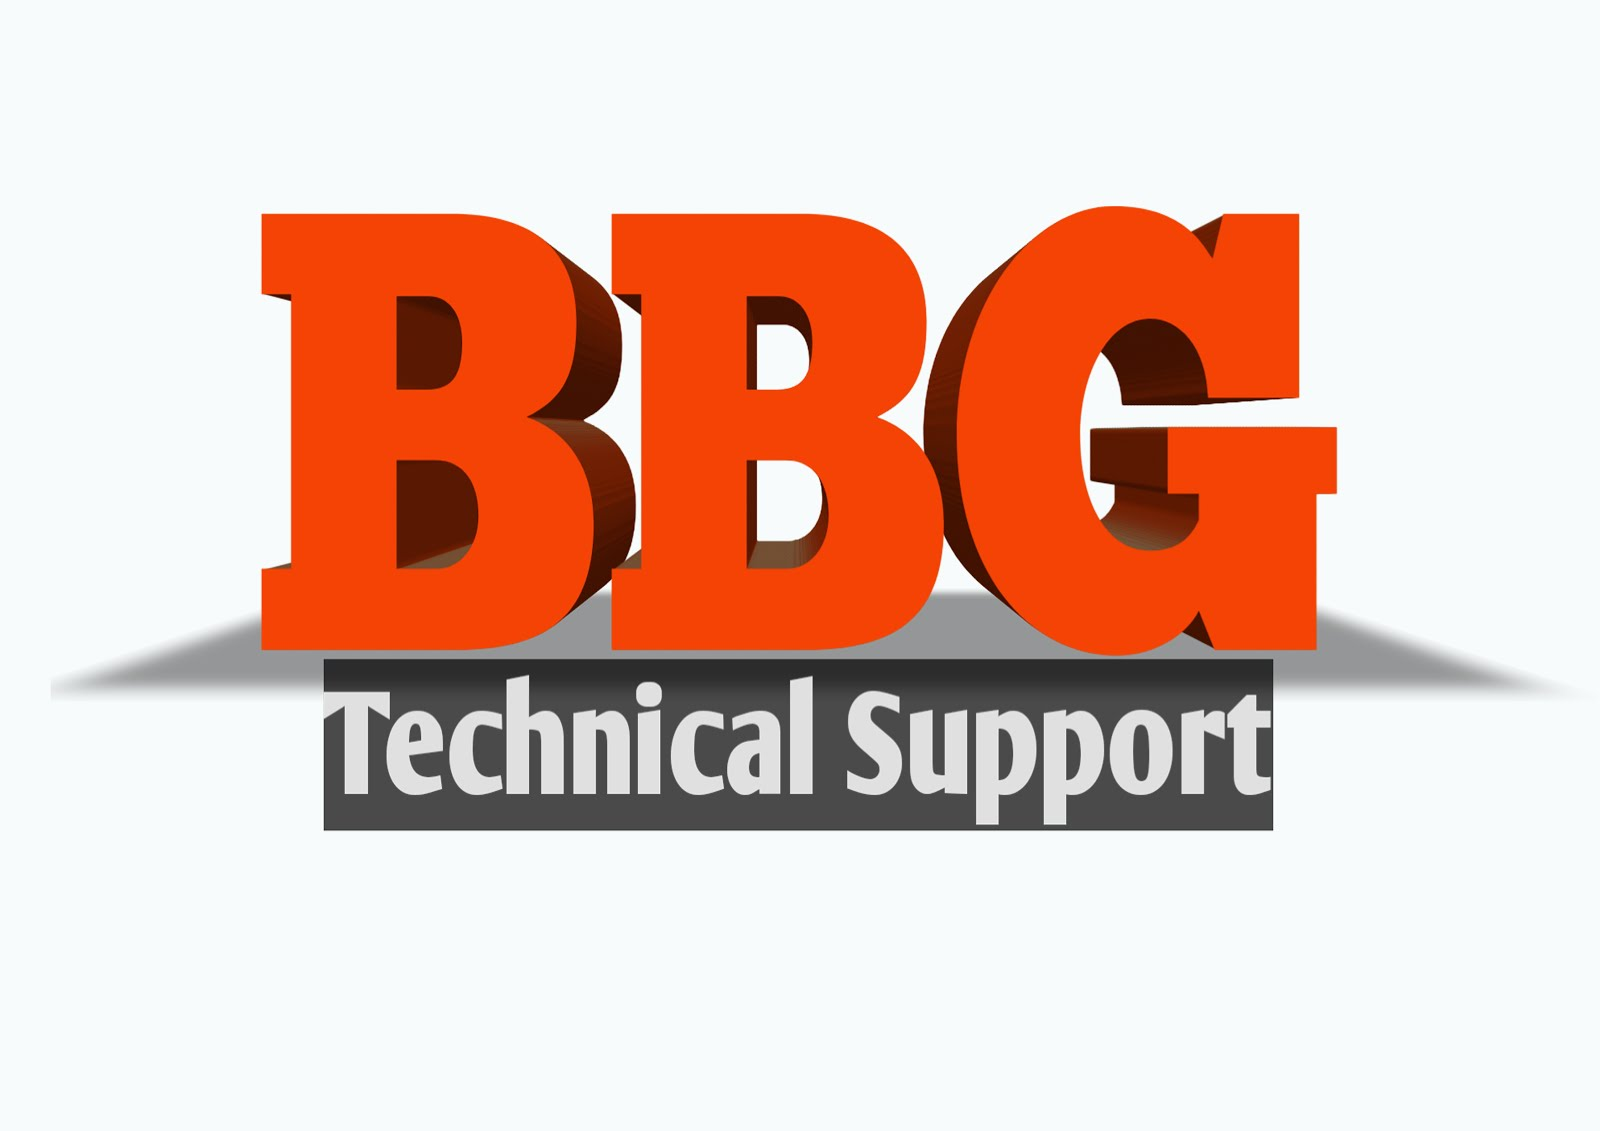 BBG TECHNICAL SUPPORT